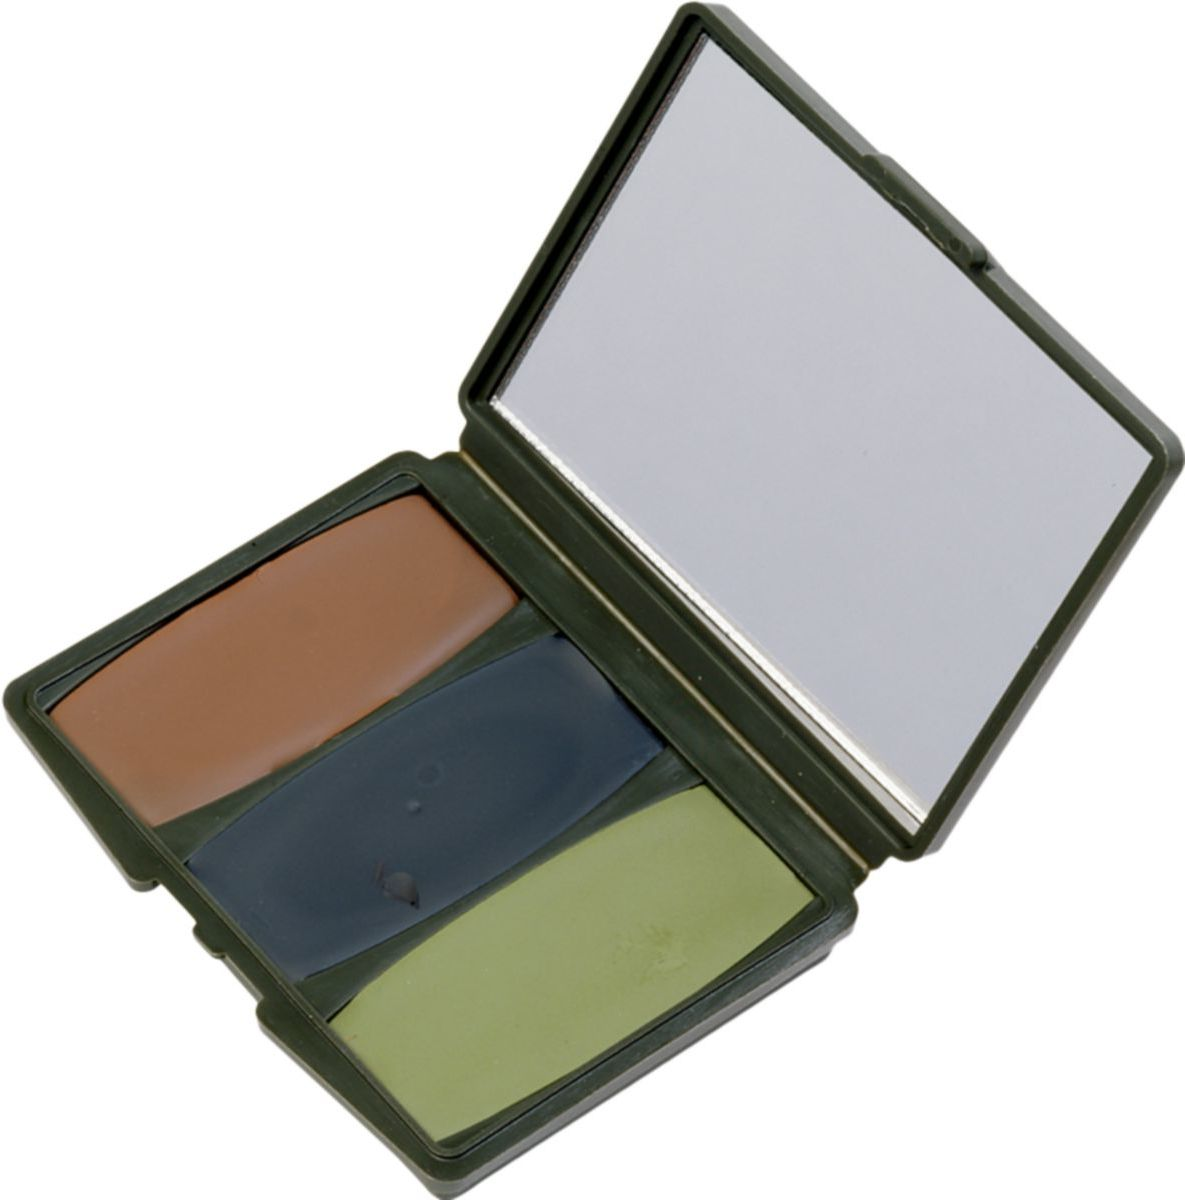 Hunters Specialties™ Three-Color Camo-Compac® Makeup Kit-Woodland